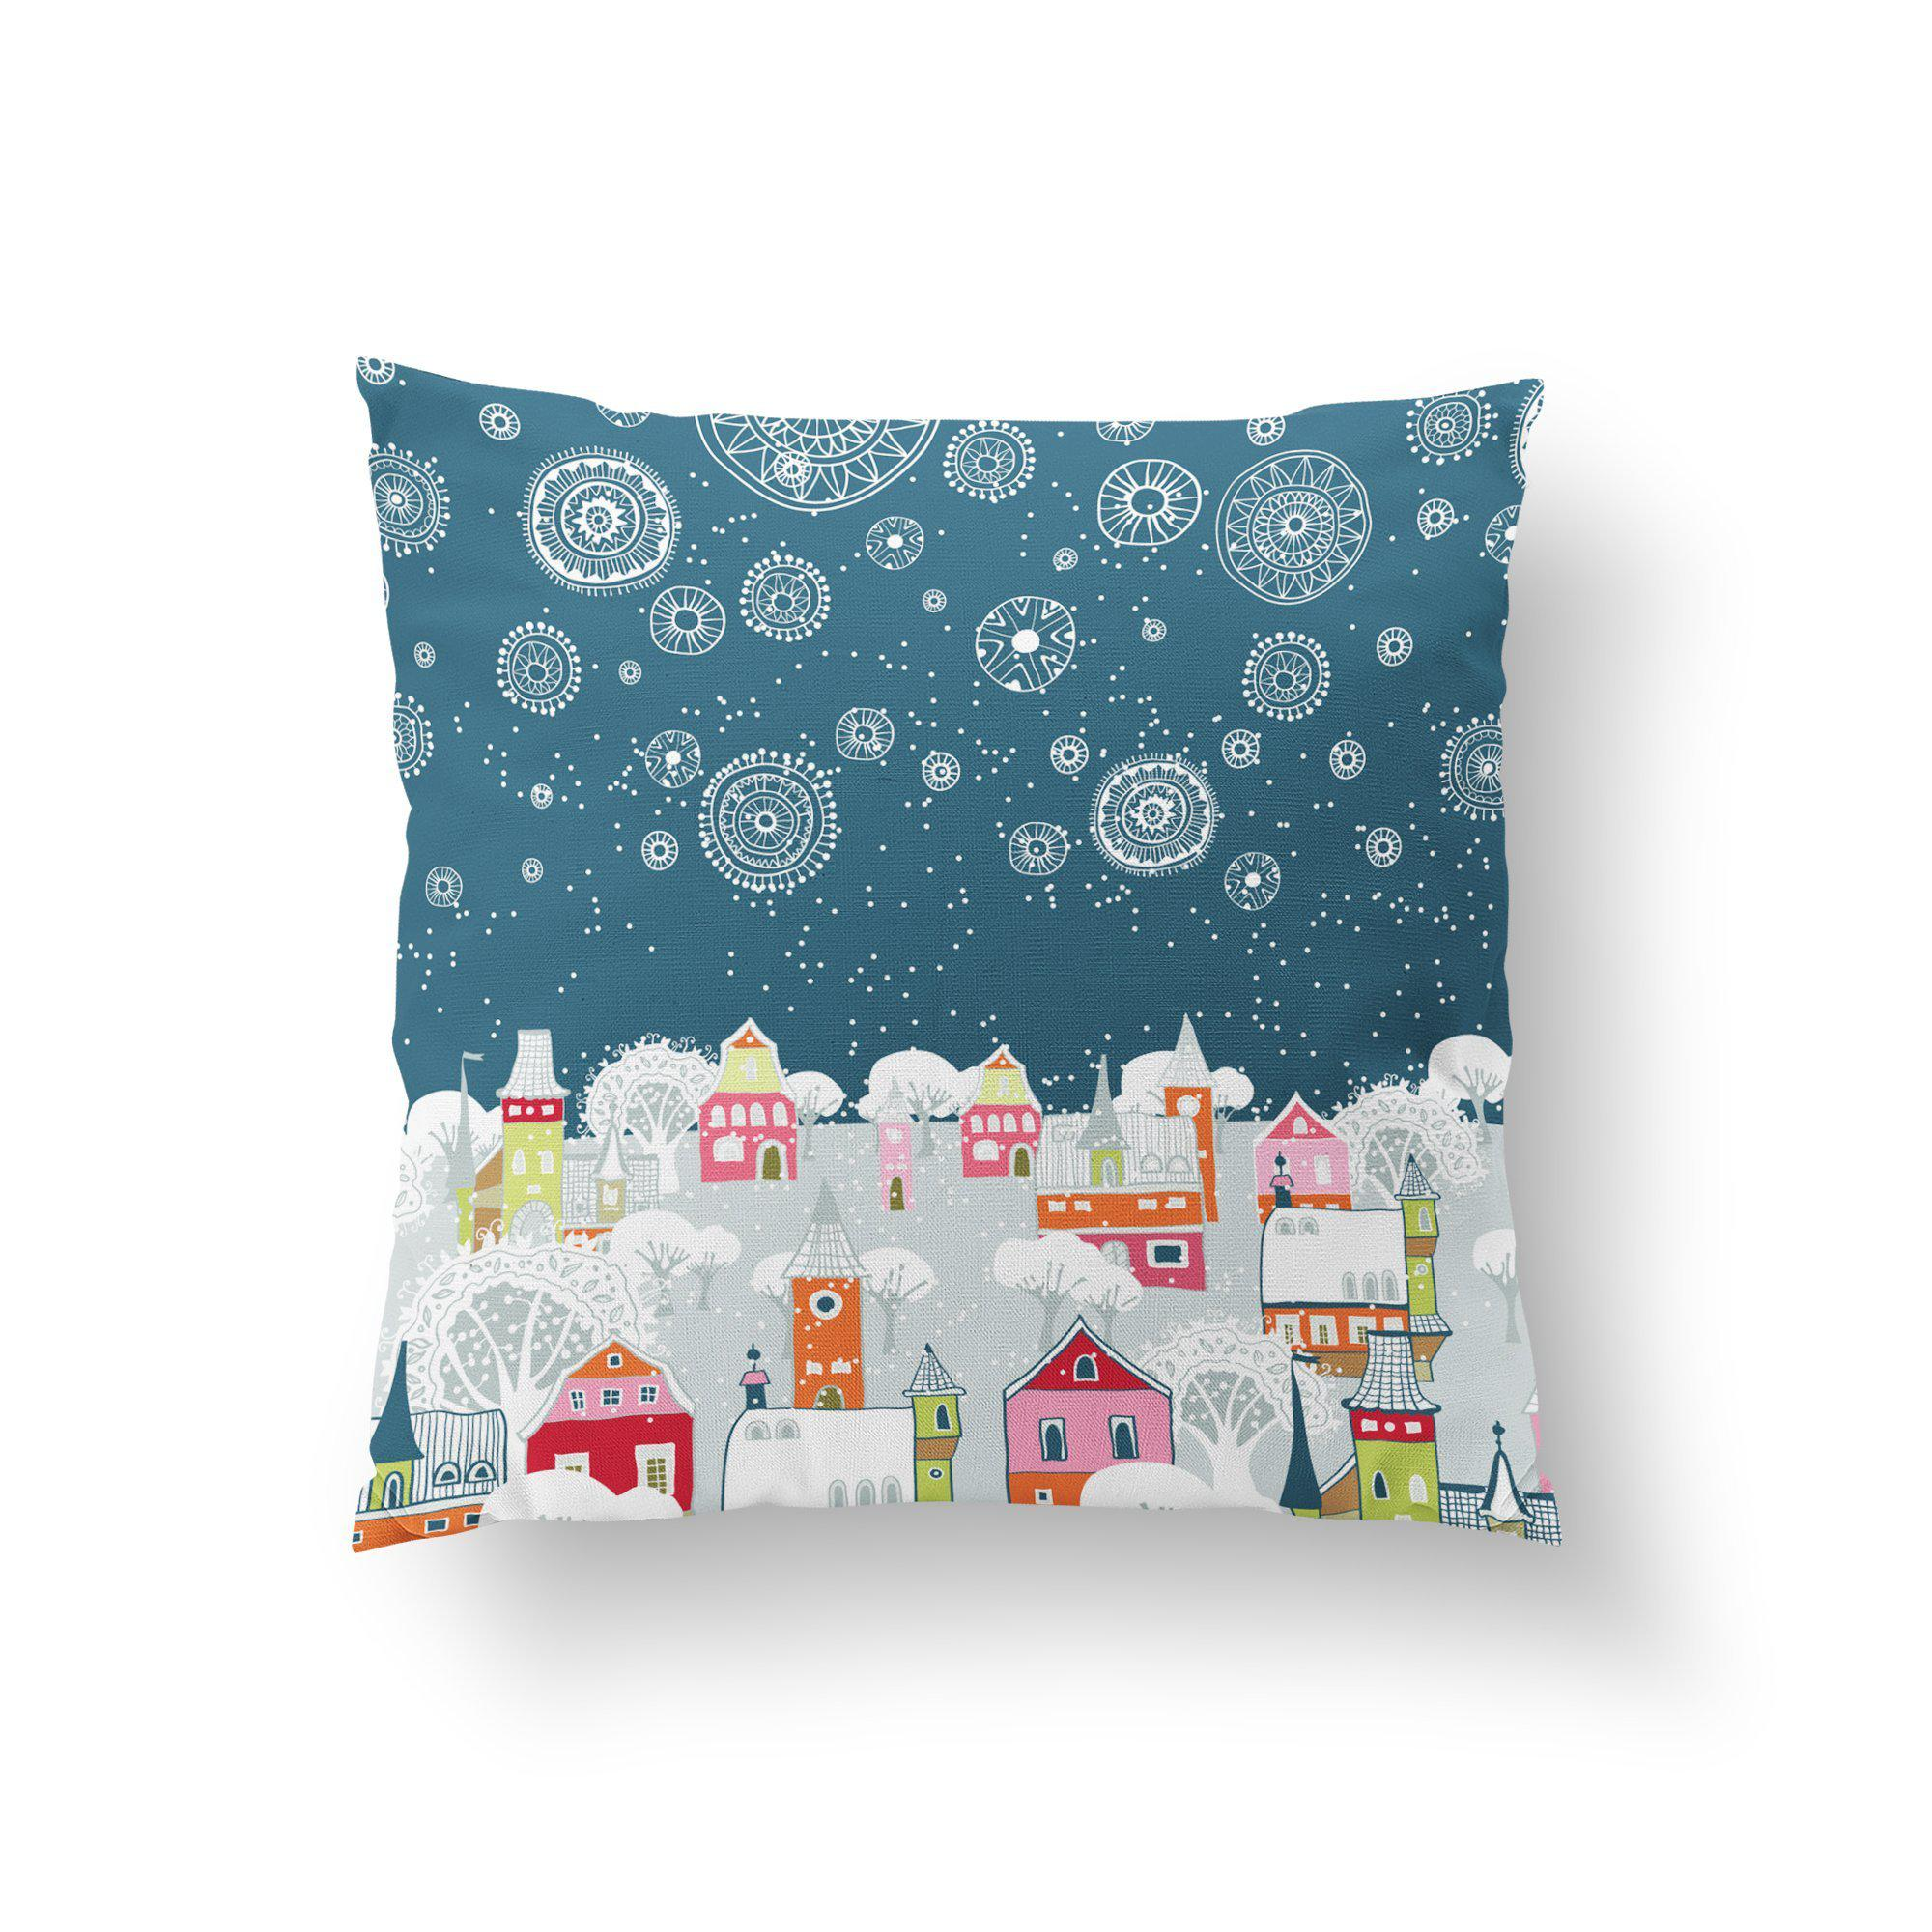 Holiday Cushion - Pillow Covers - W.FRANCIS